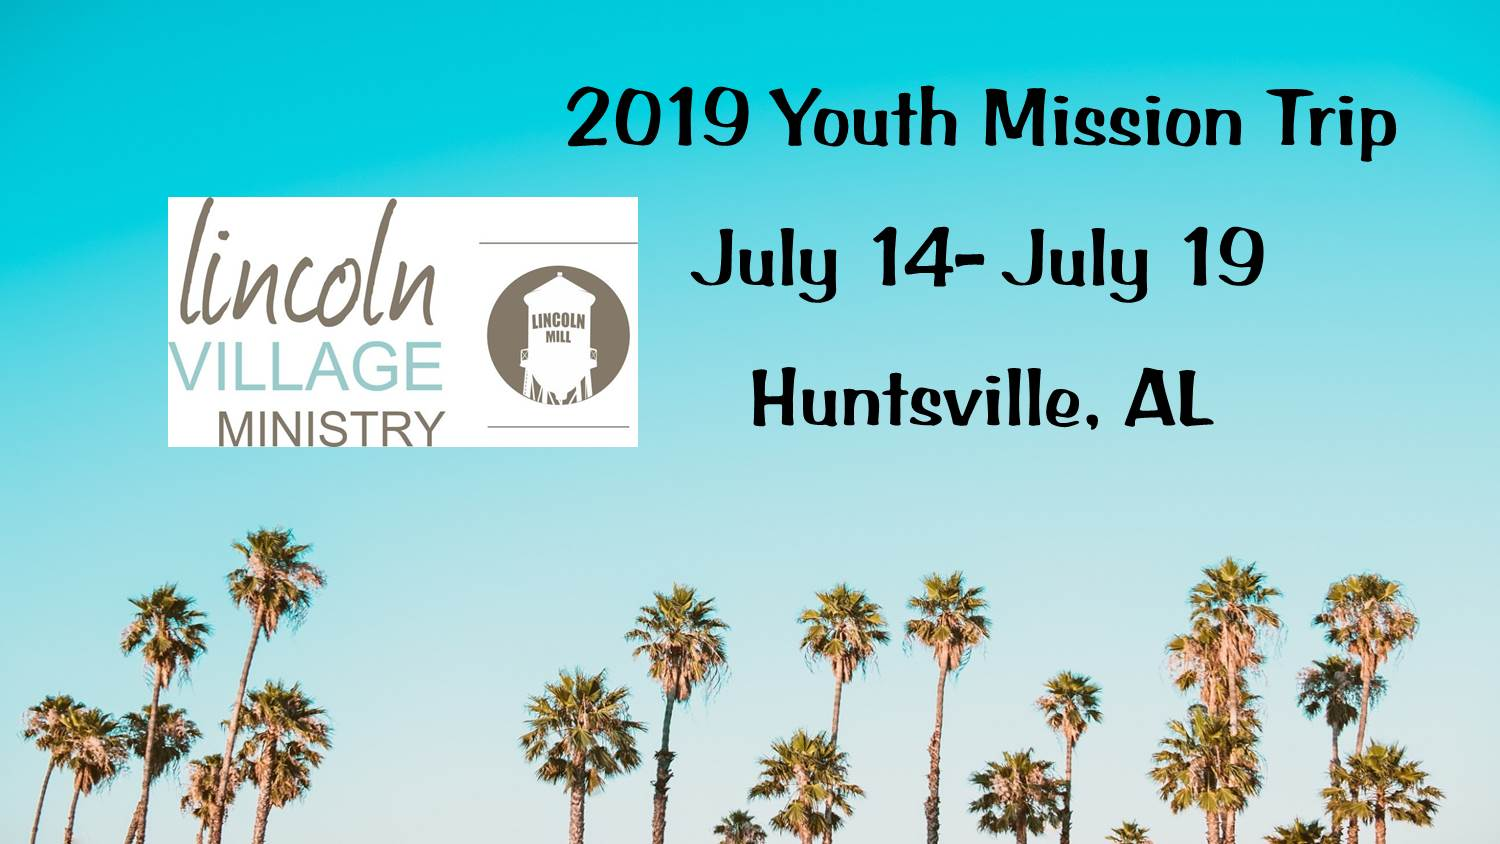 Youth Mission trip website